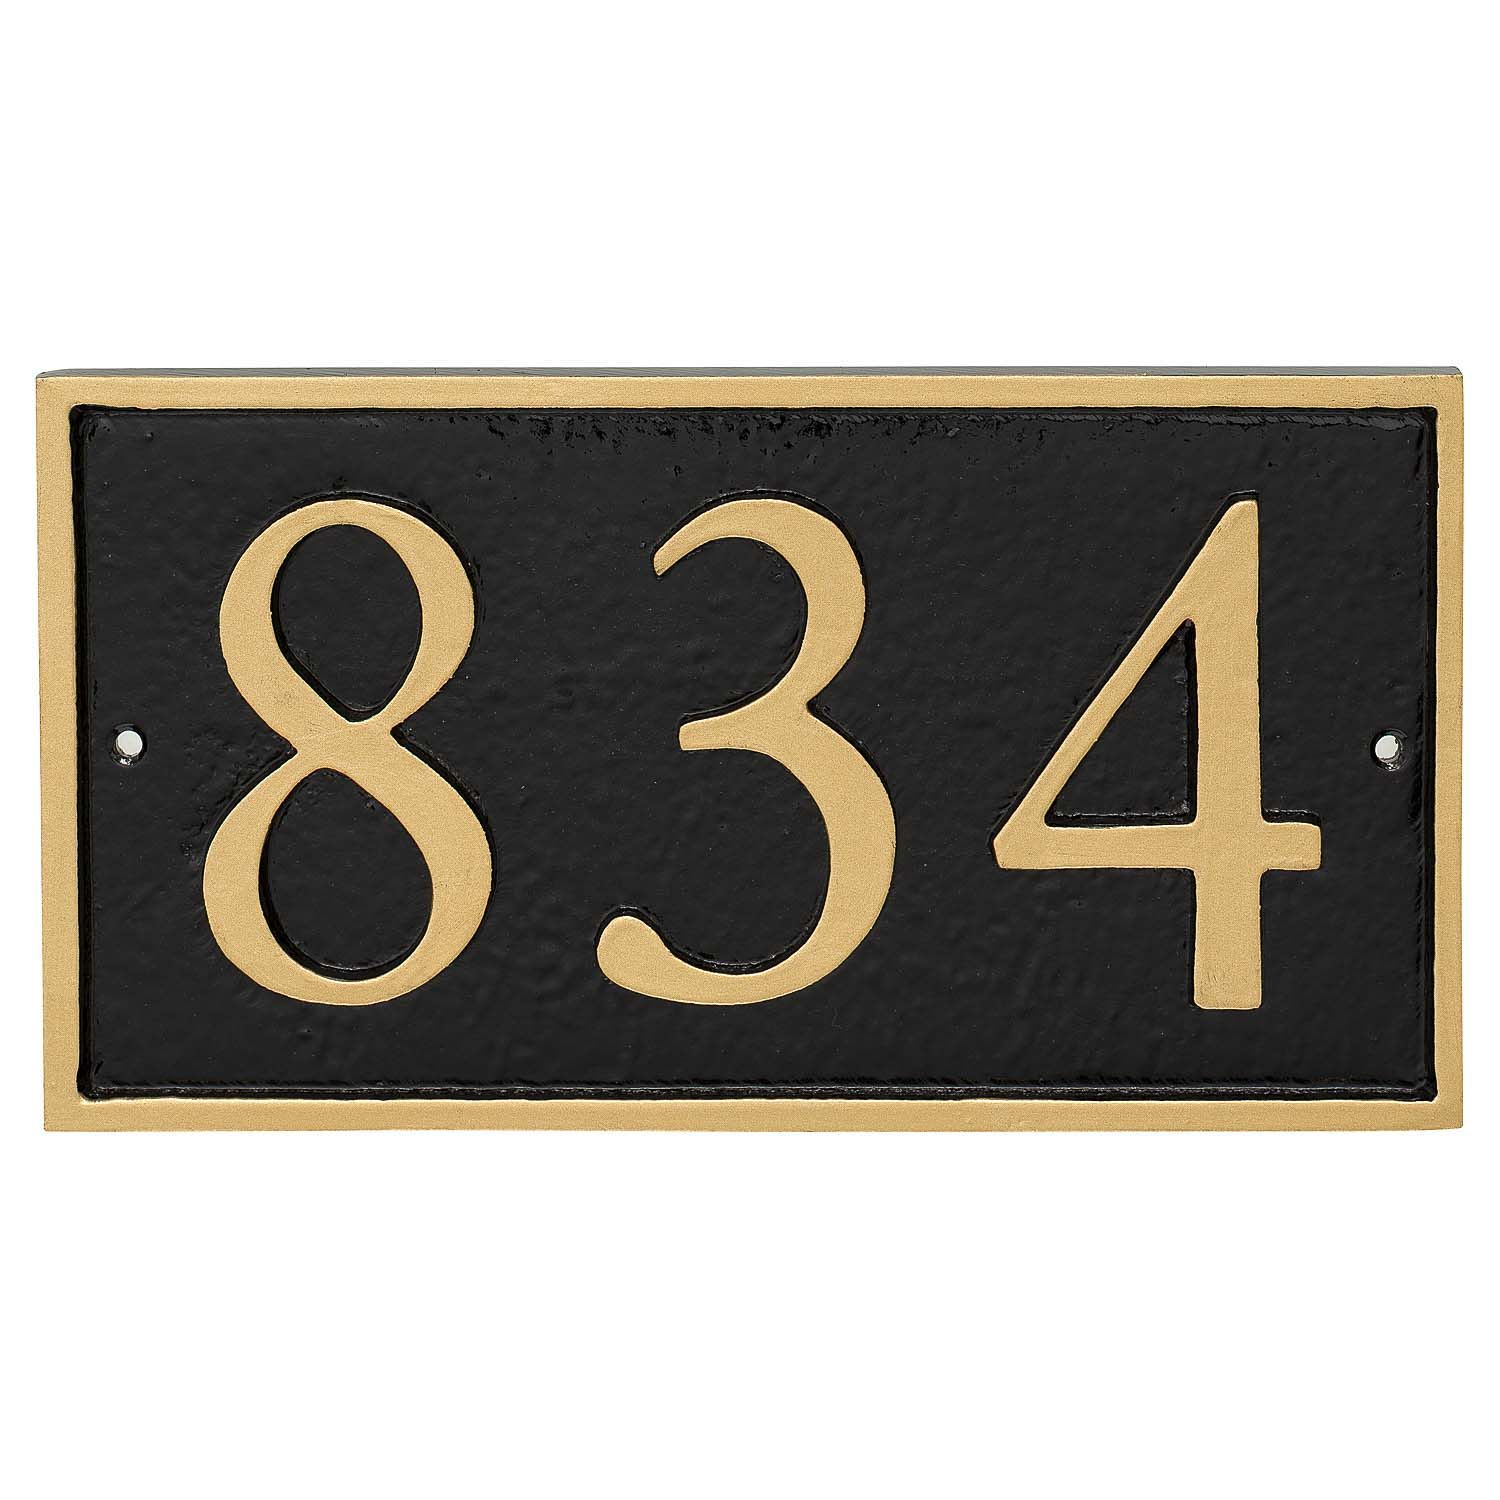 Rectangle Serif Economy Address Plaque (holds up to 3 characters)